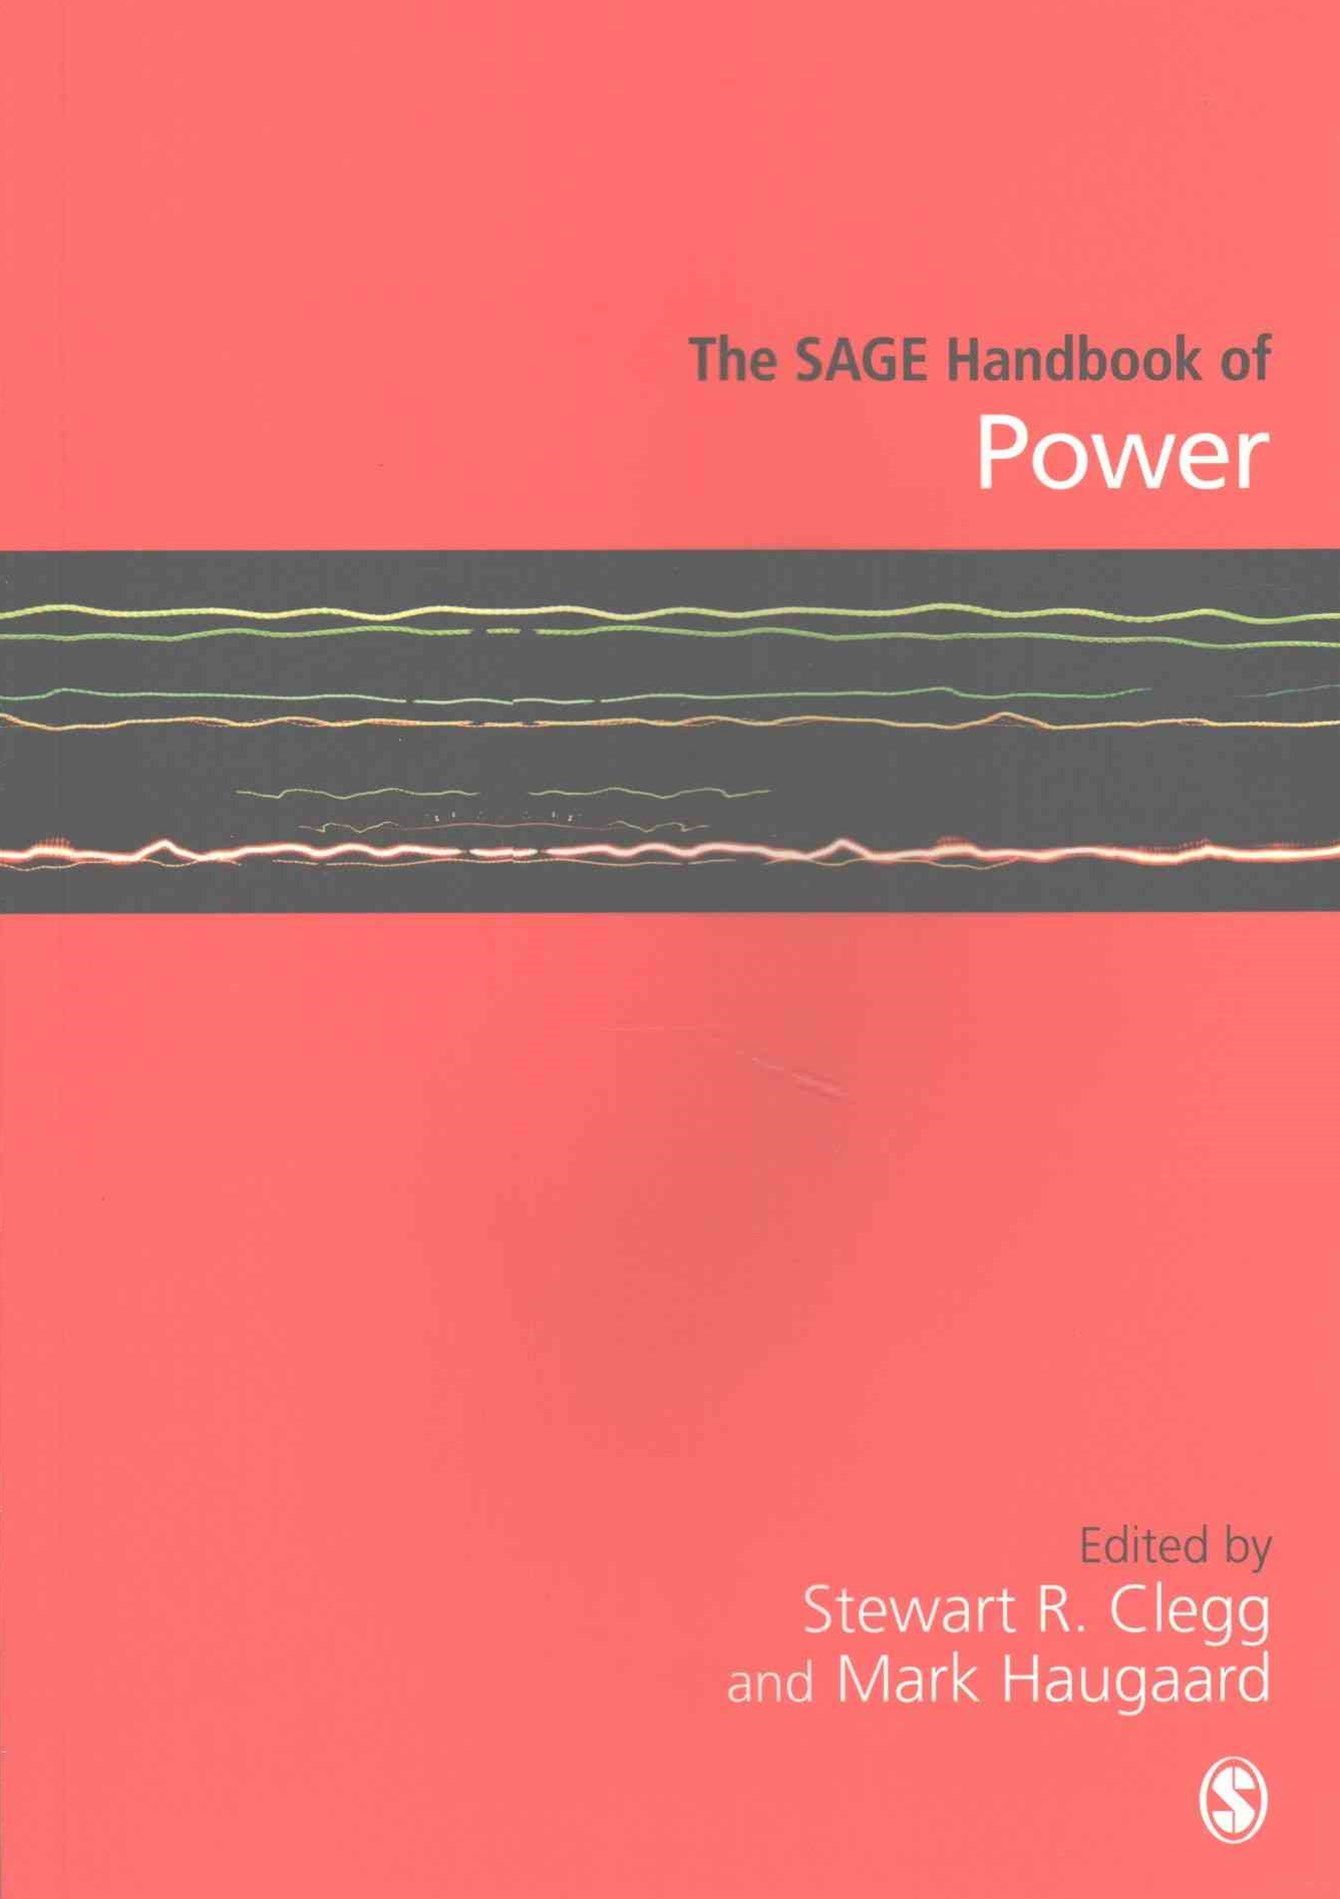 The SAGE Handbook of Power